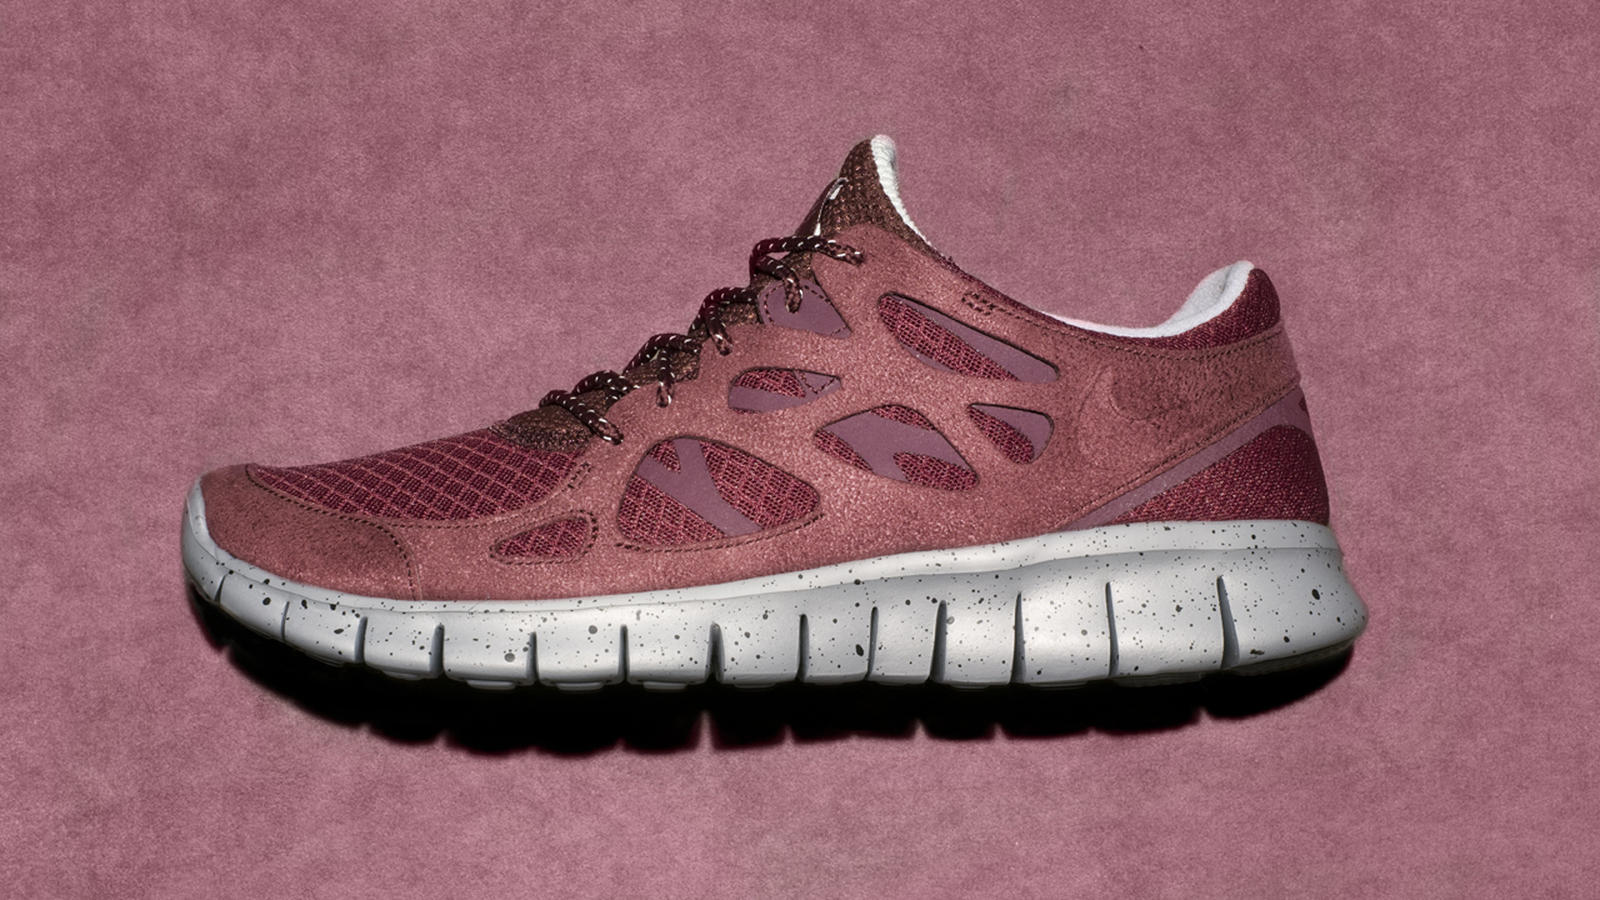 NIKE FREE RUN +2 CITY PACK